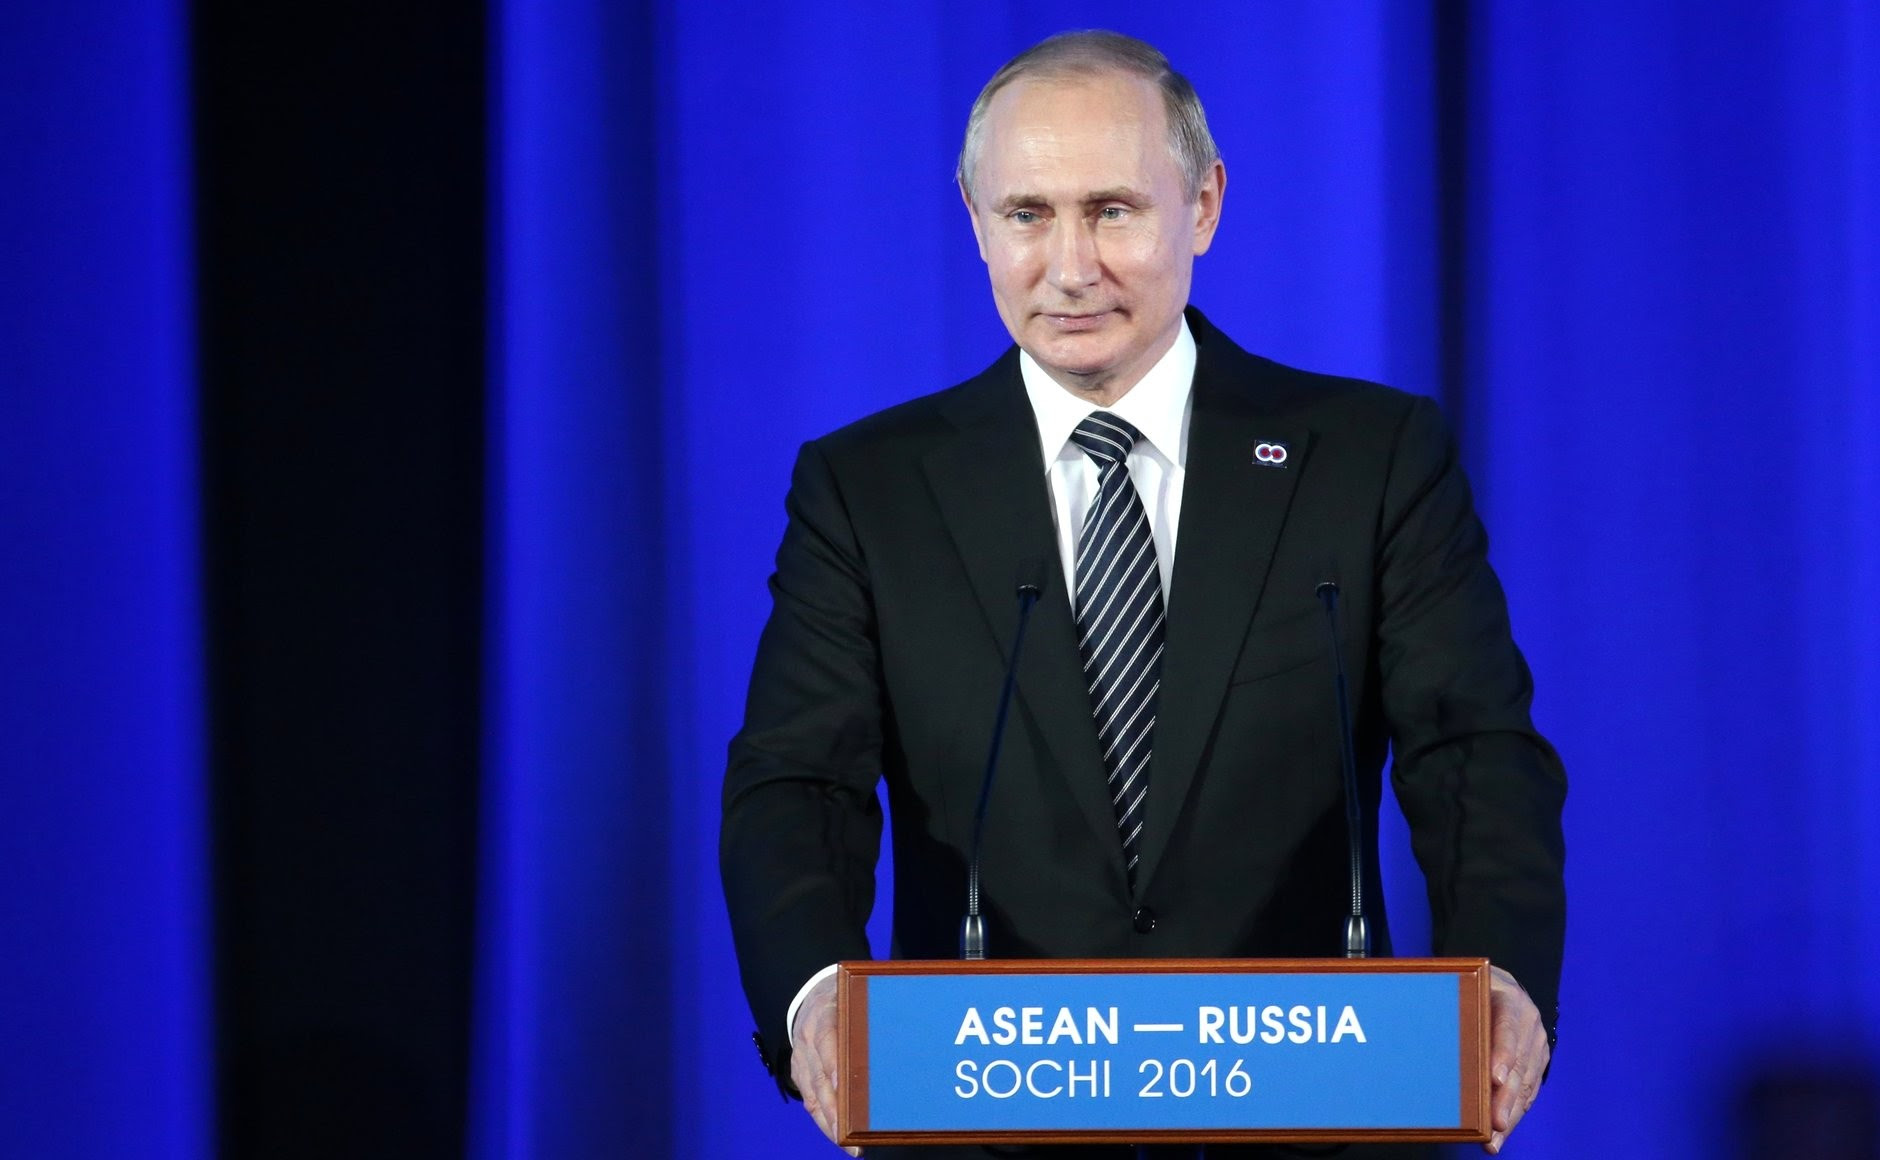 Reception in honour of heads of delegations taking part in Russia-ASEAN summit. Photo: russia-asean20.ru